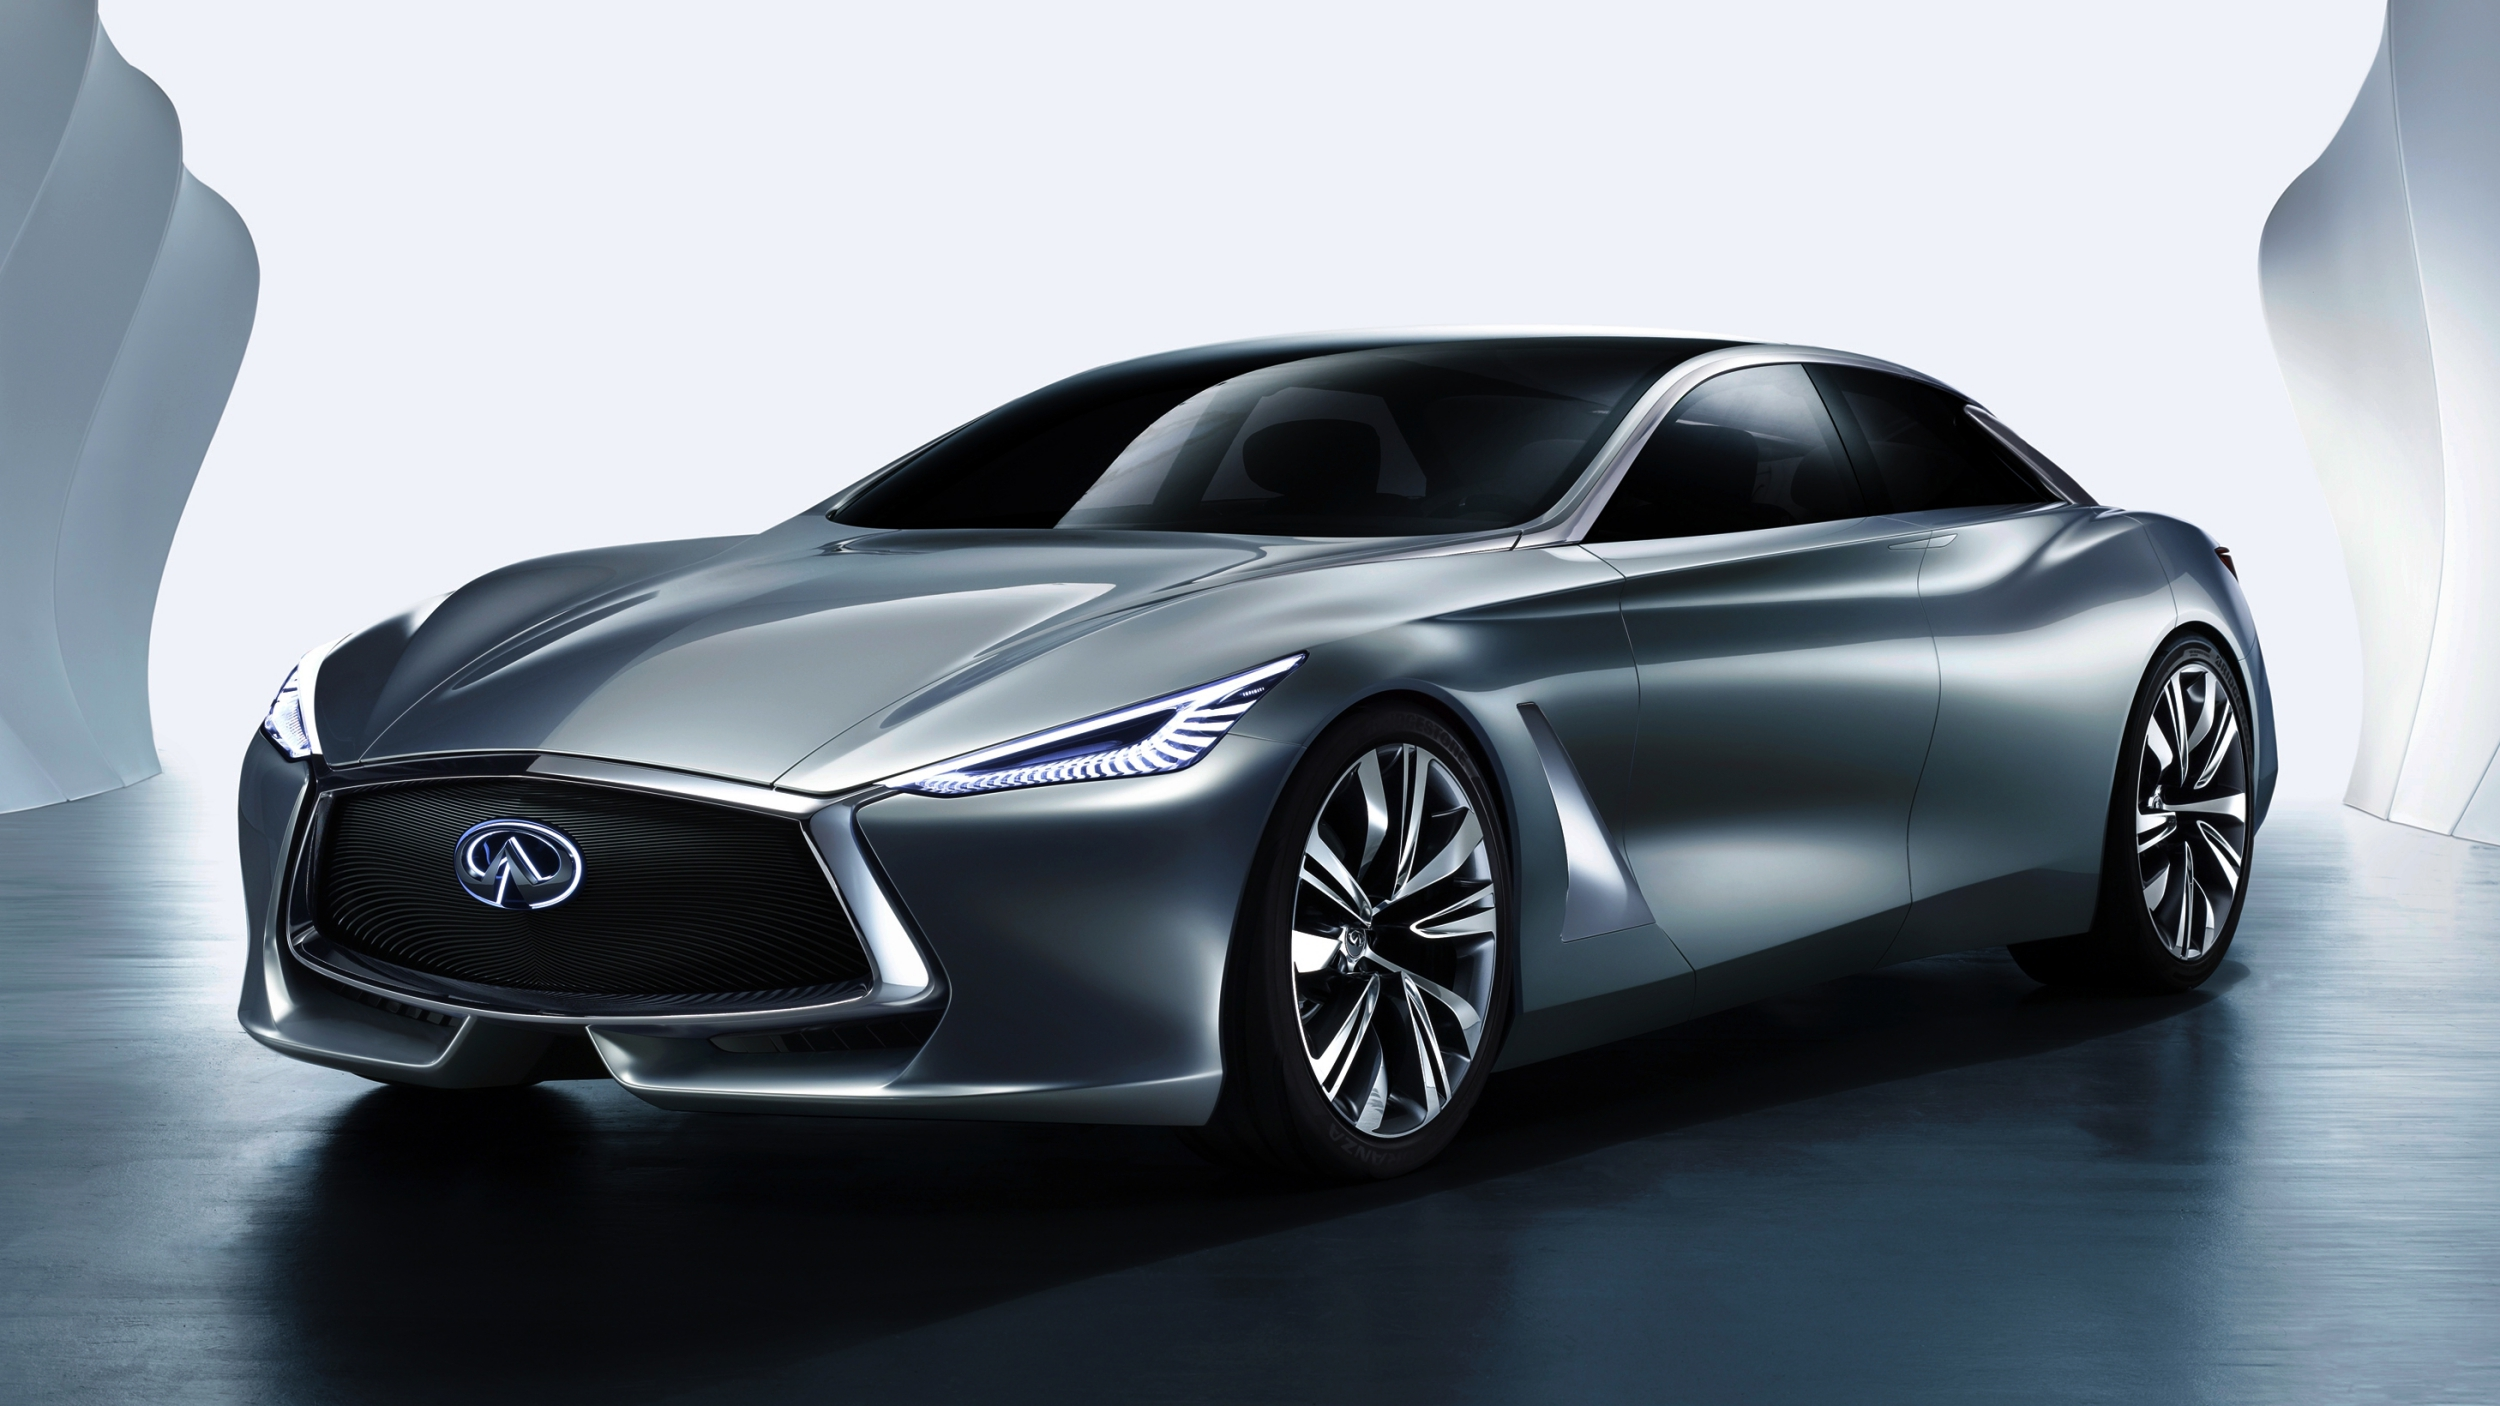 News - New Infiniti Concept Will Rival Jaguar XJ